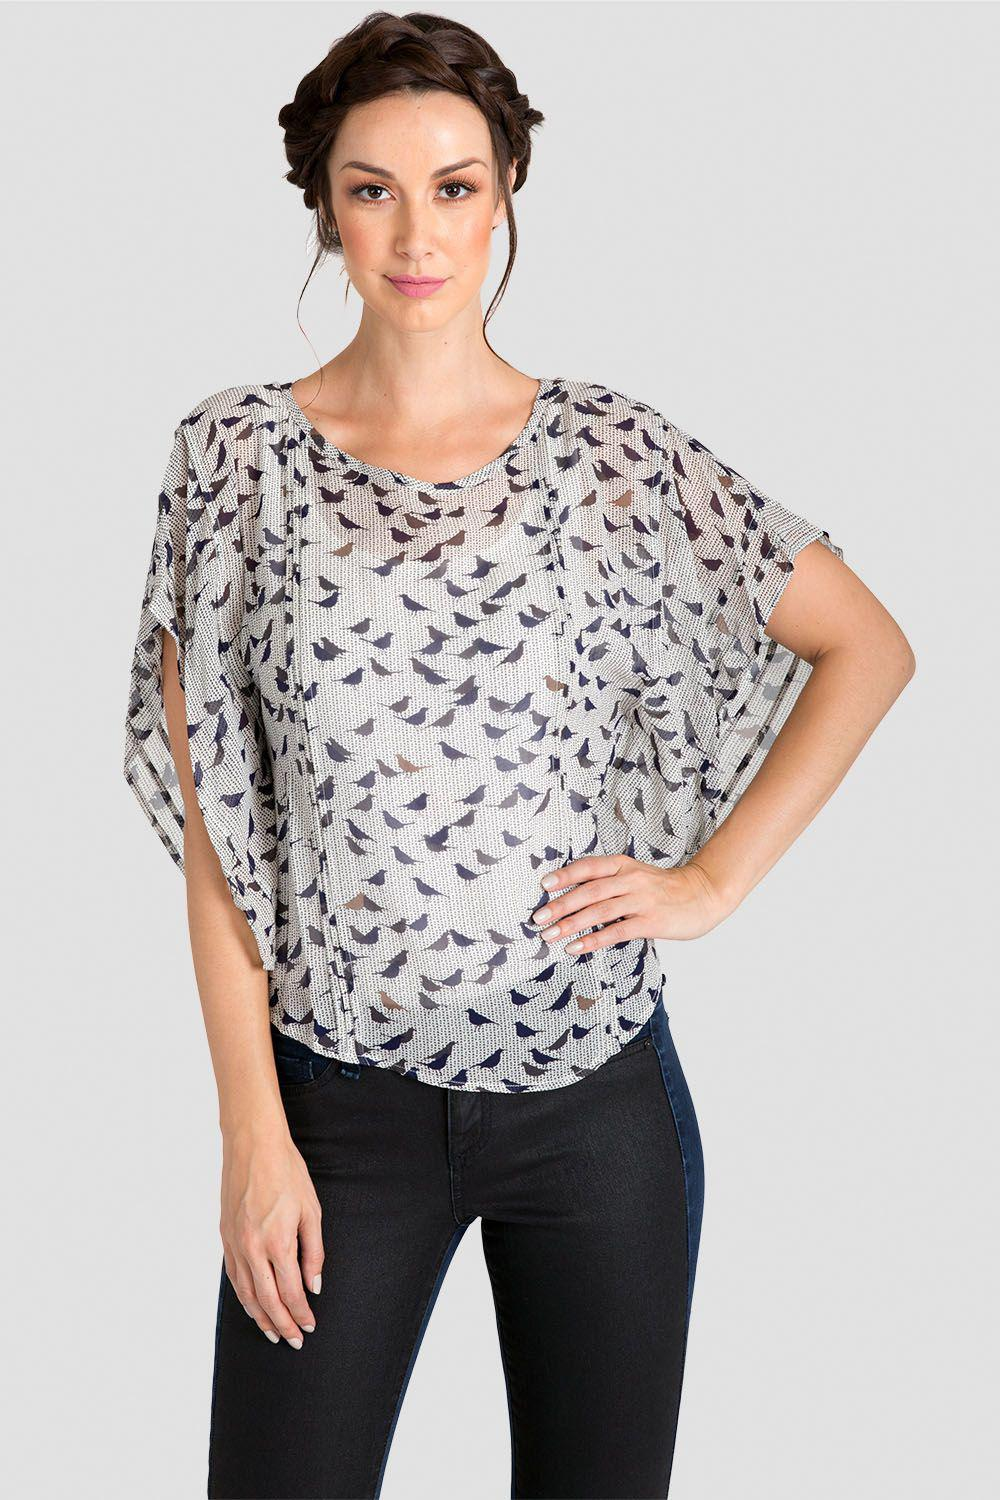 Ava The Birds Printed Pancho Style Beaded Top Silk Blouse